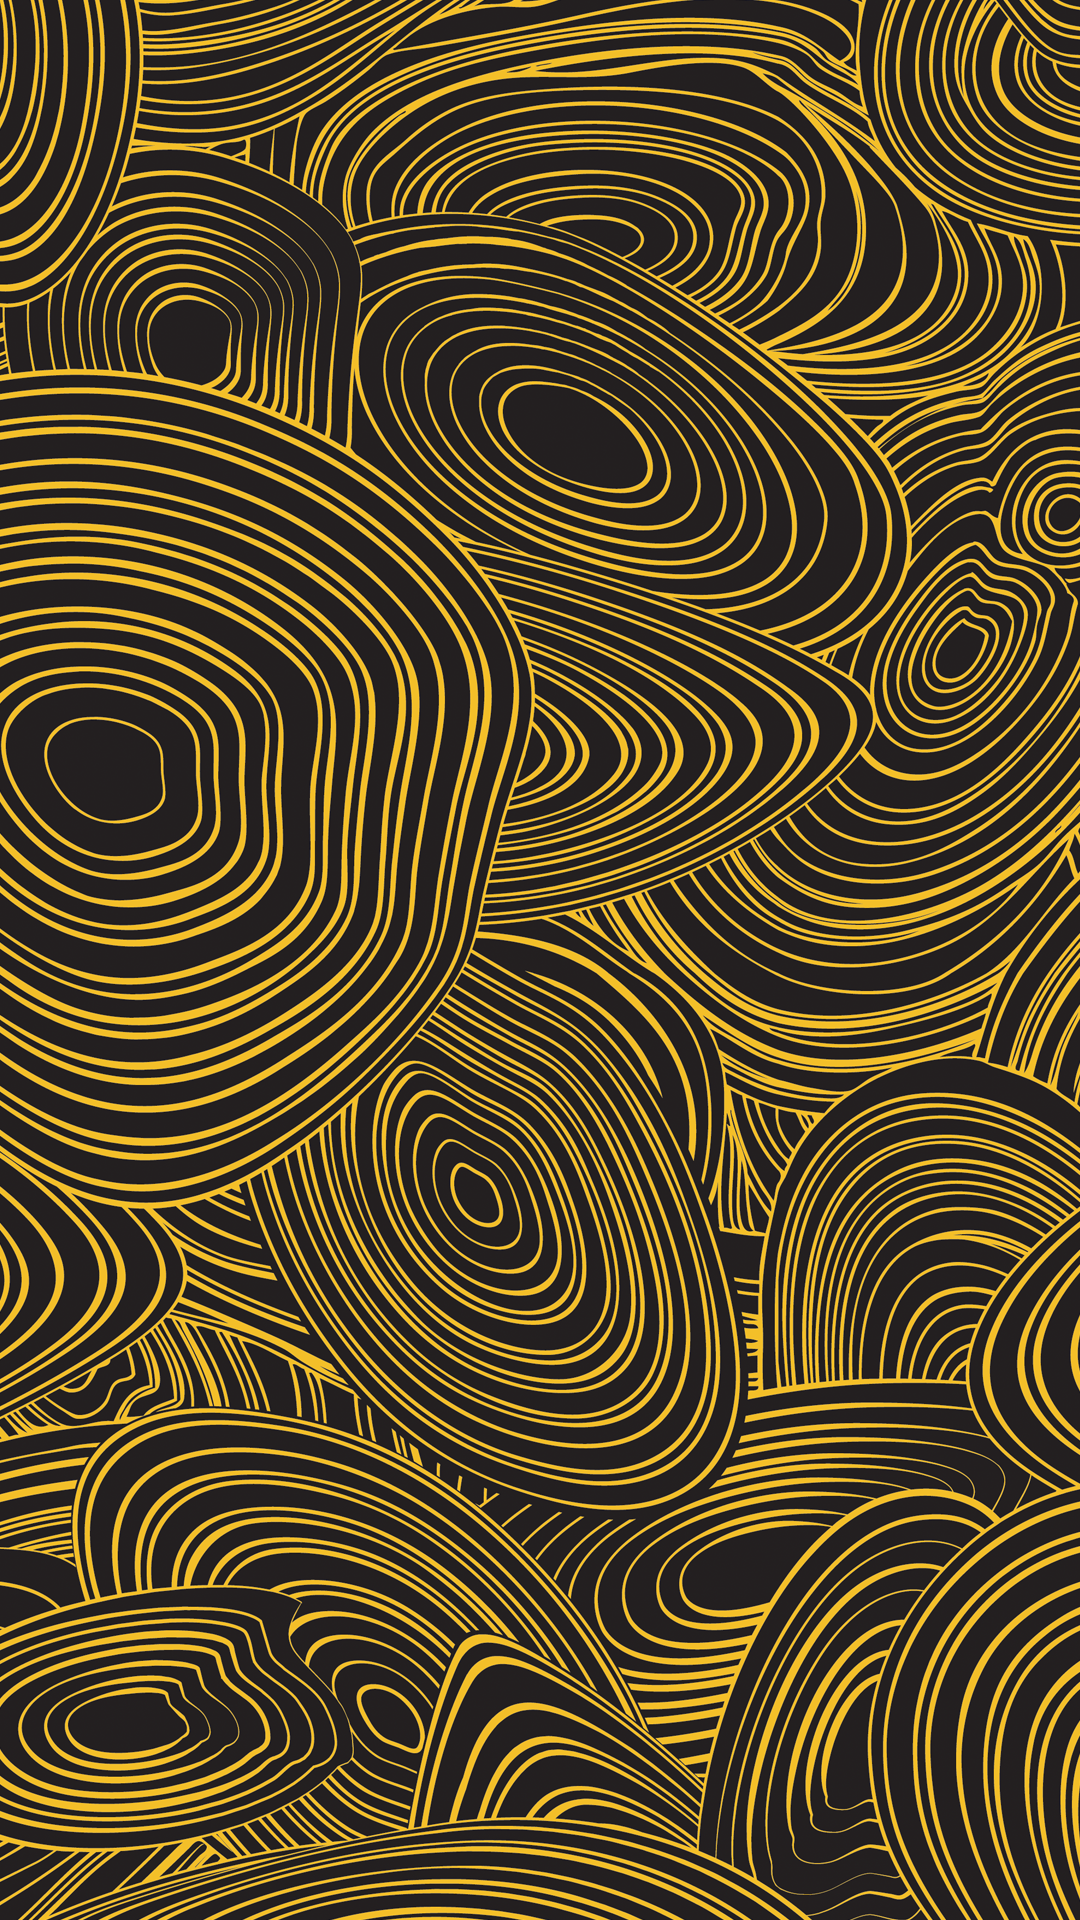 CandyShell Inked Jonathan Adler Wallpapers for iPhone 6s Plus and